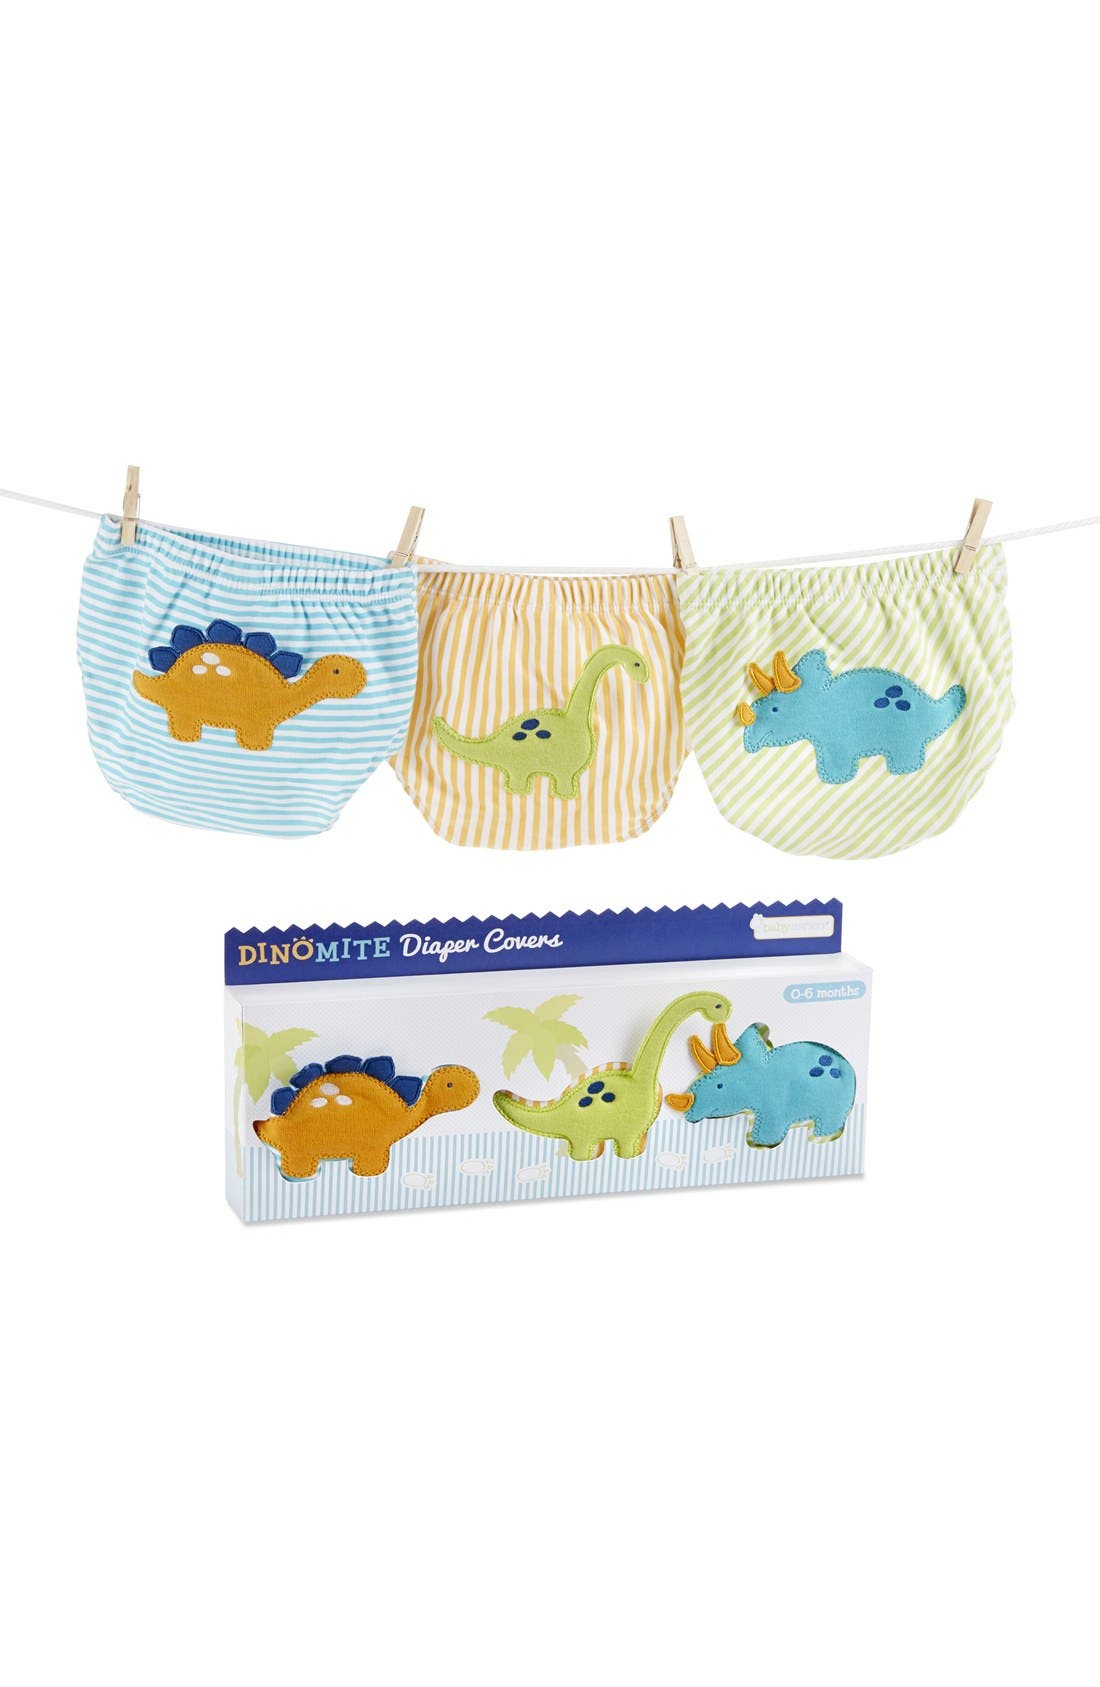 Main Image - Baby Aspen 'Dinomite' Diaper Covers (3-Pack) (Baby)